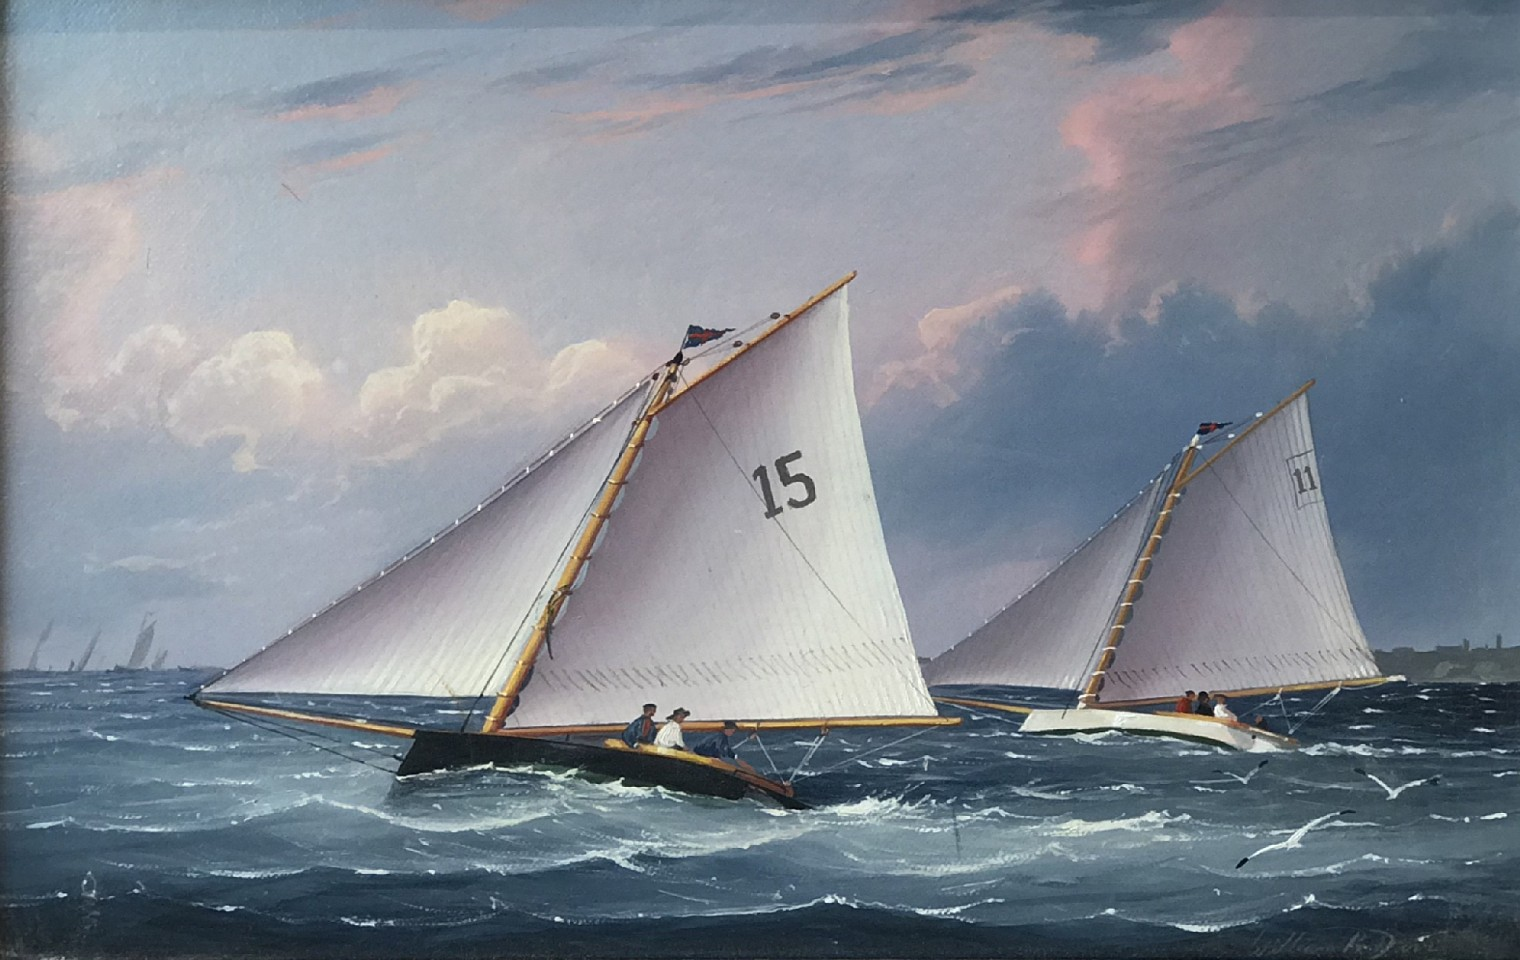 William R. Davis ,   Catboats Racing  ,  1992     oil on canvas ,  8 1/2 x 12 in. (21.6 x 30.5 cm)     WD190601